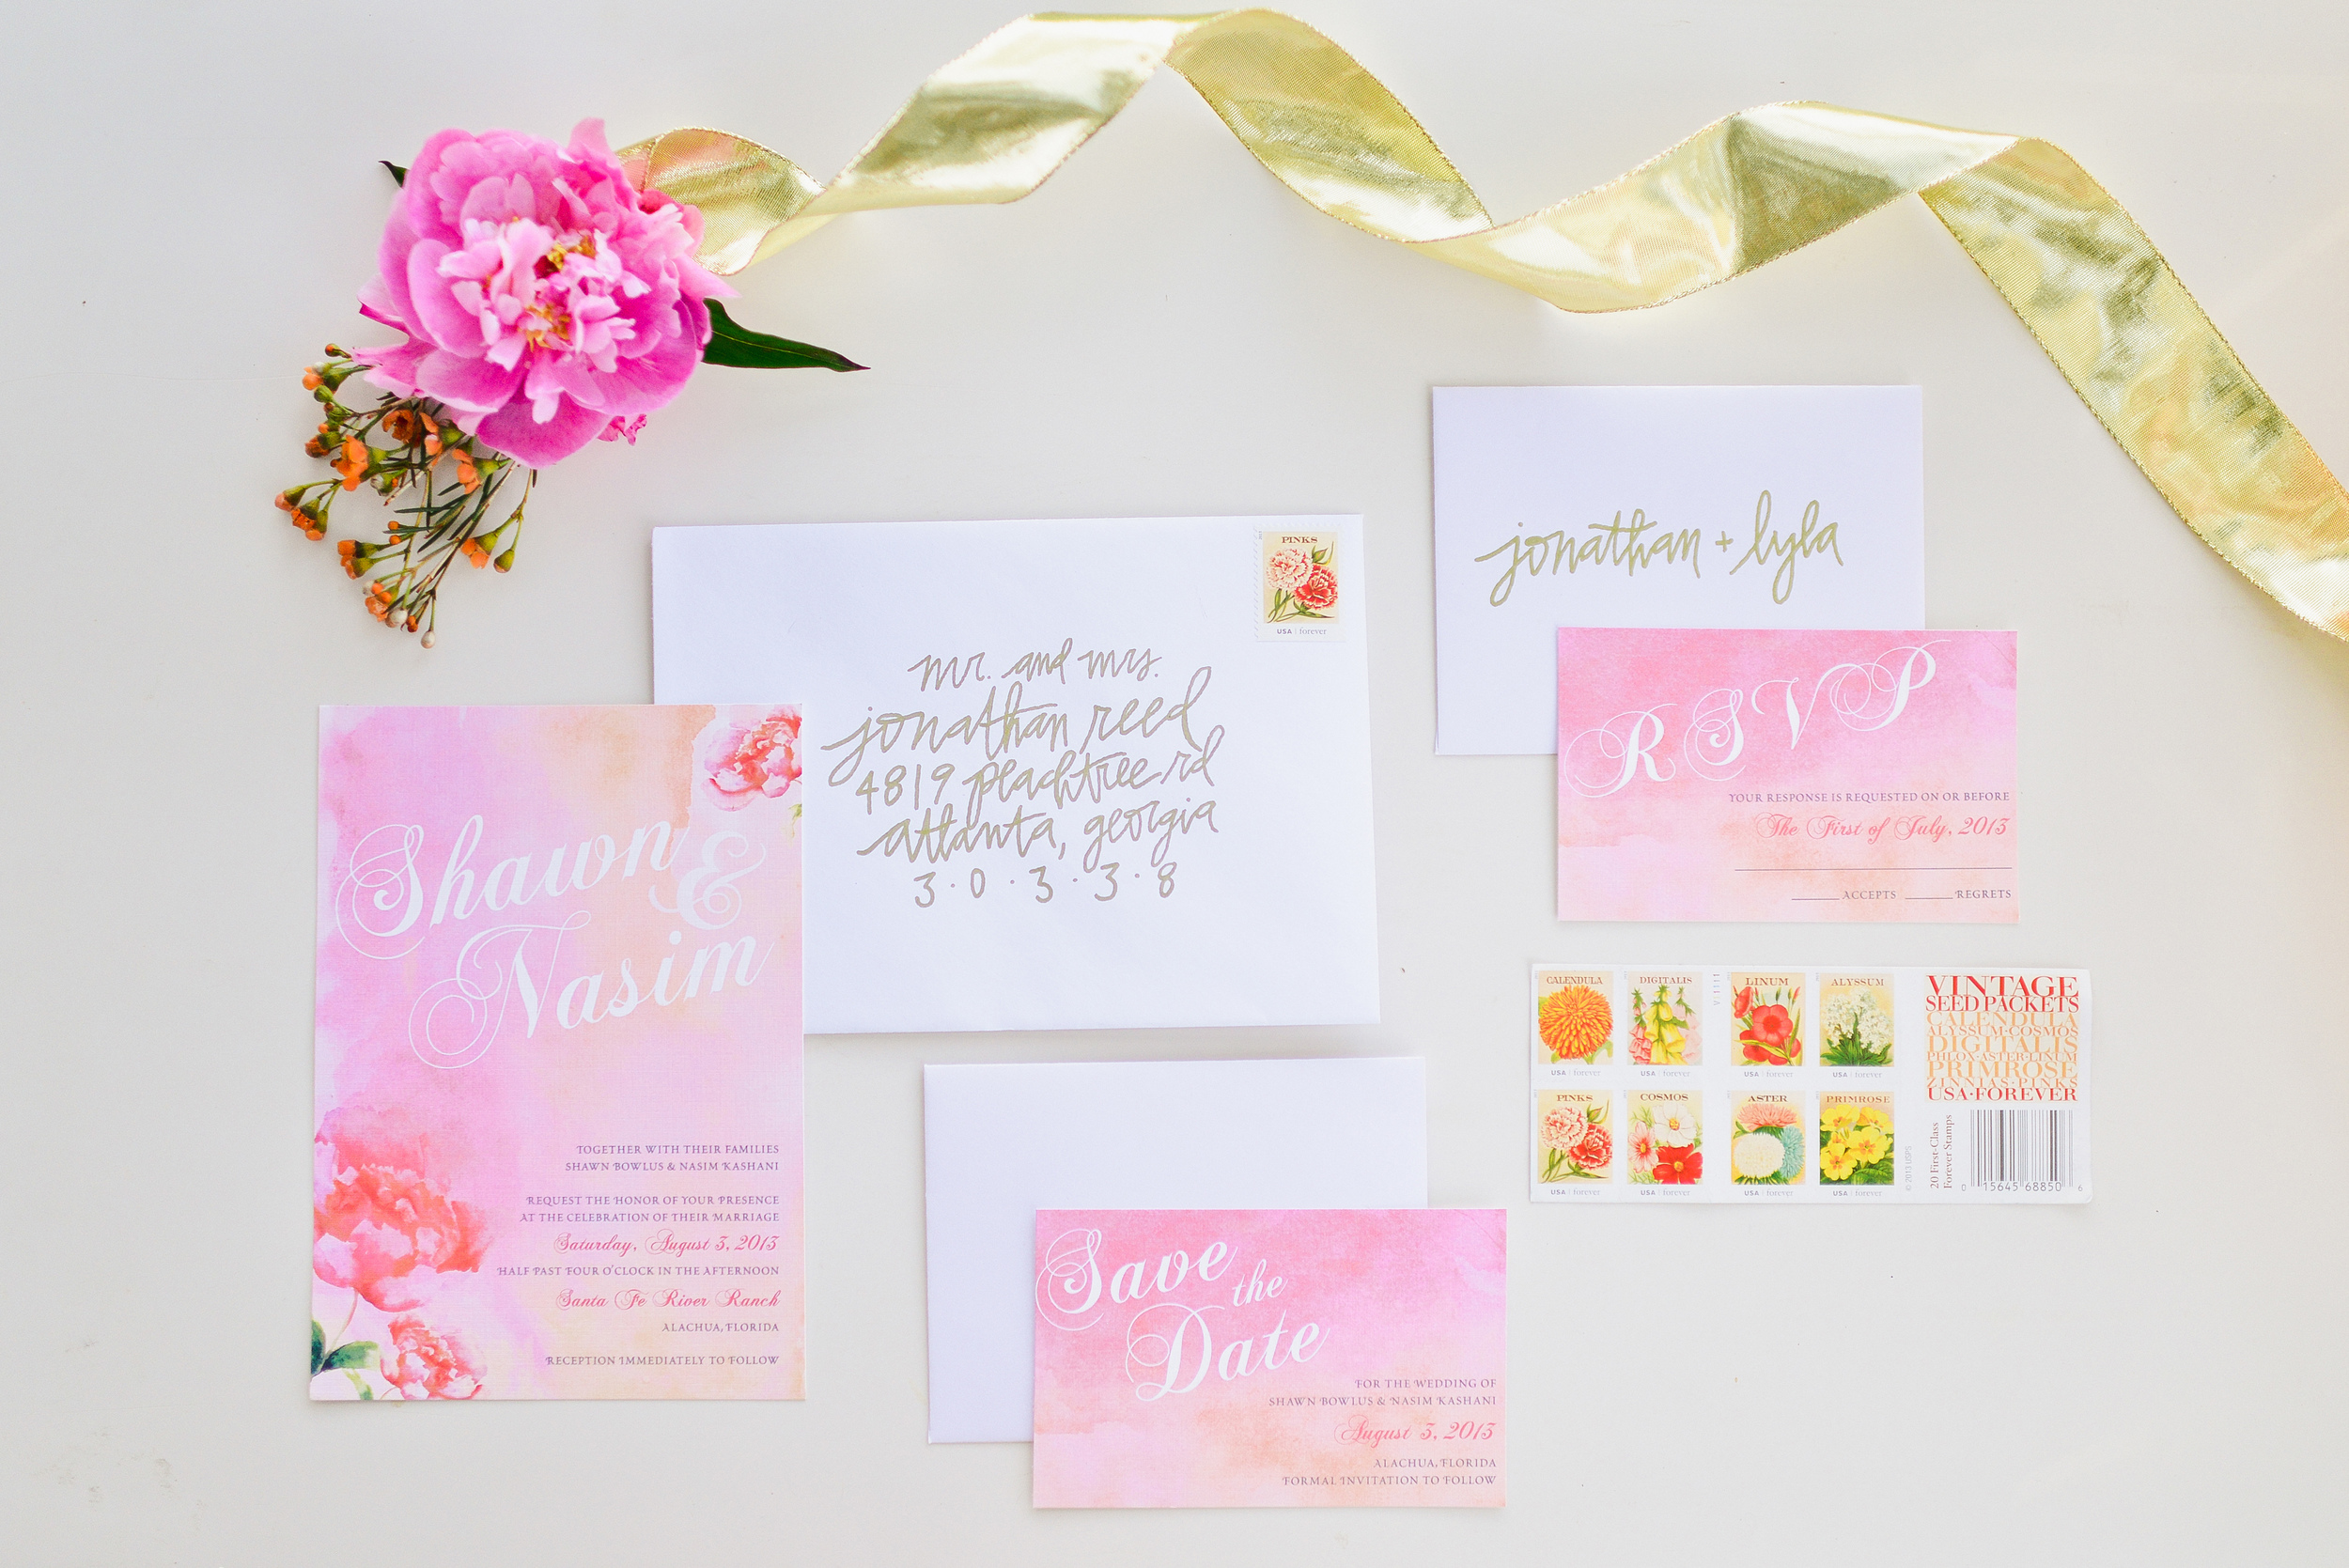 Wedding Invitation, RSVP Card, Save the Date for Watercolor Wedding